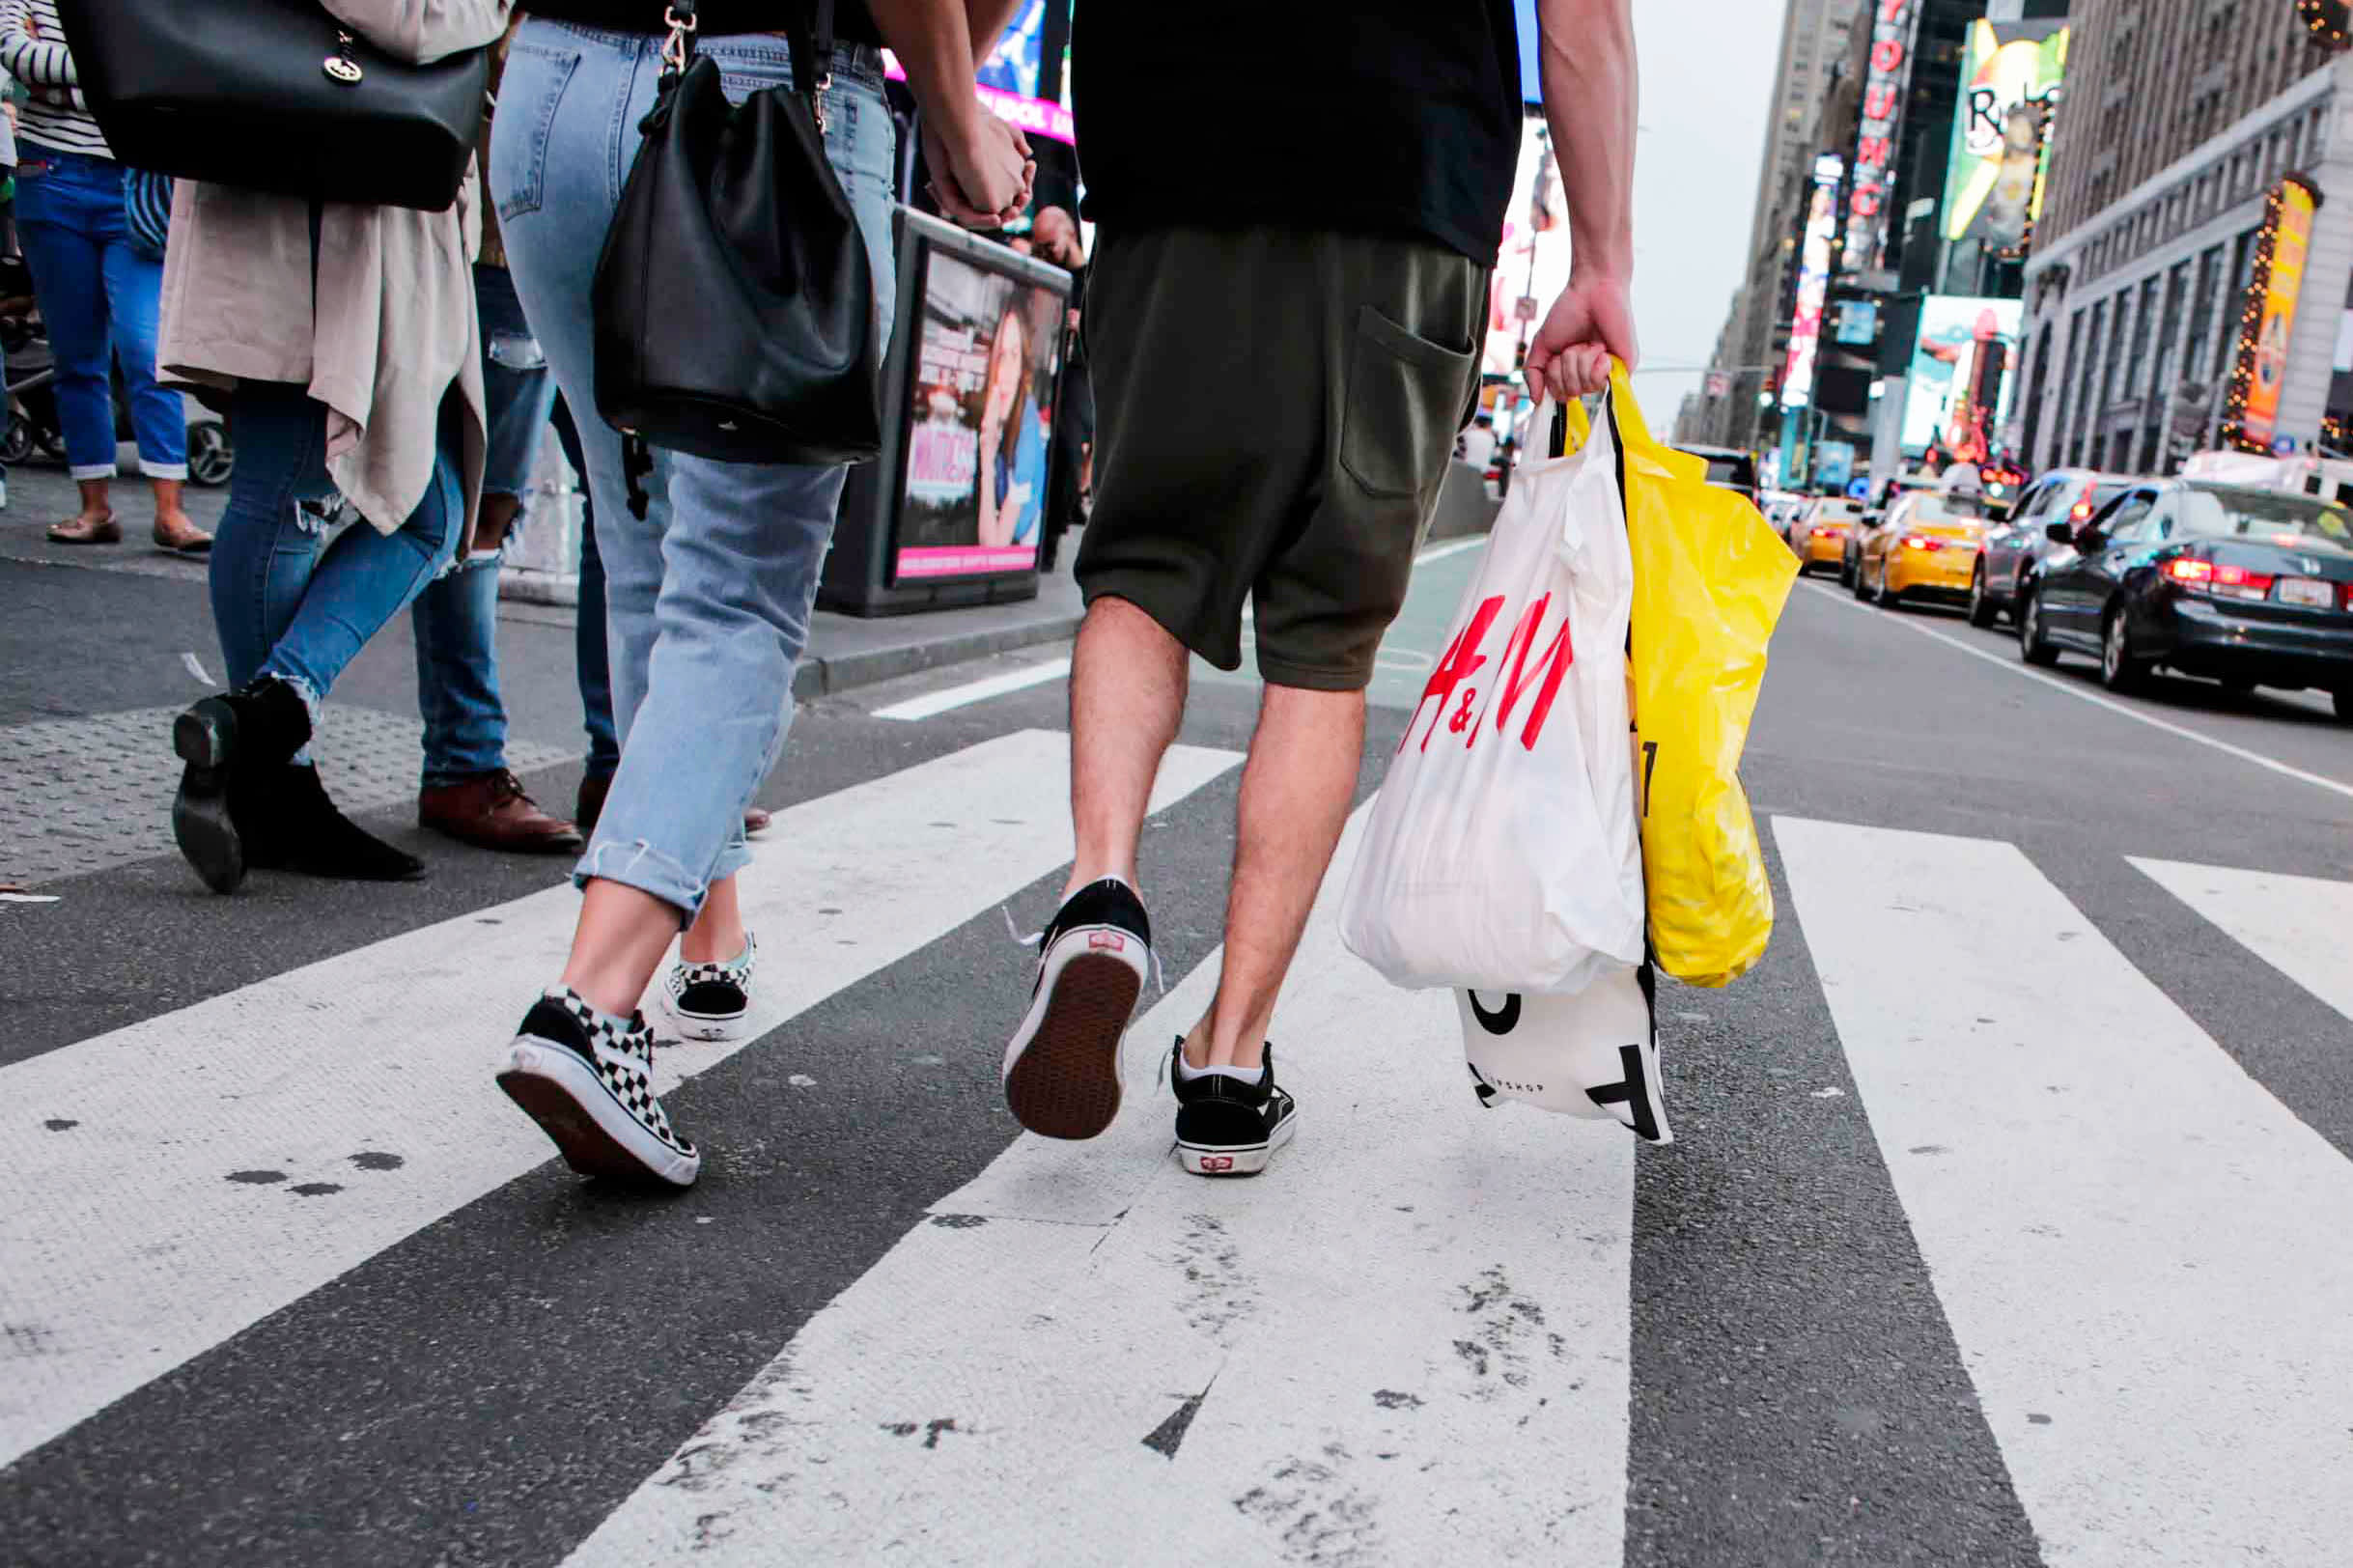 US consumer sentiment surges to highest level in 15 years